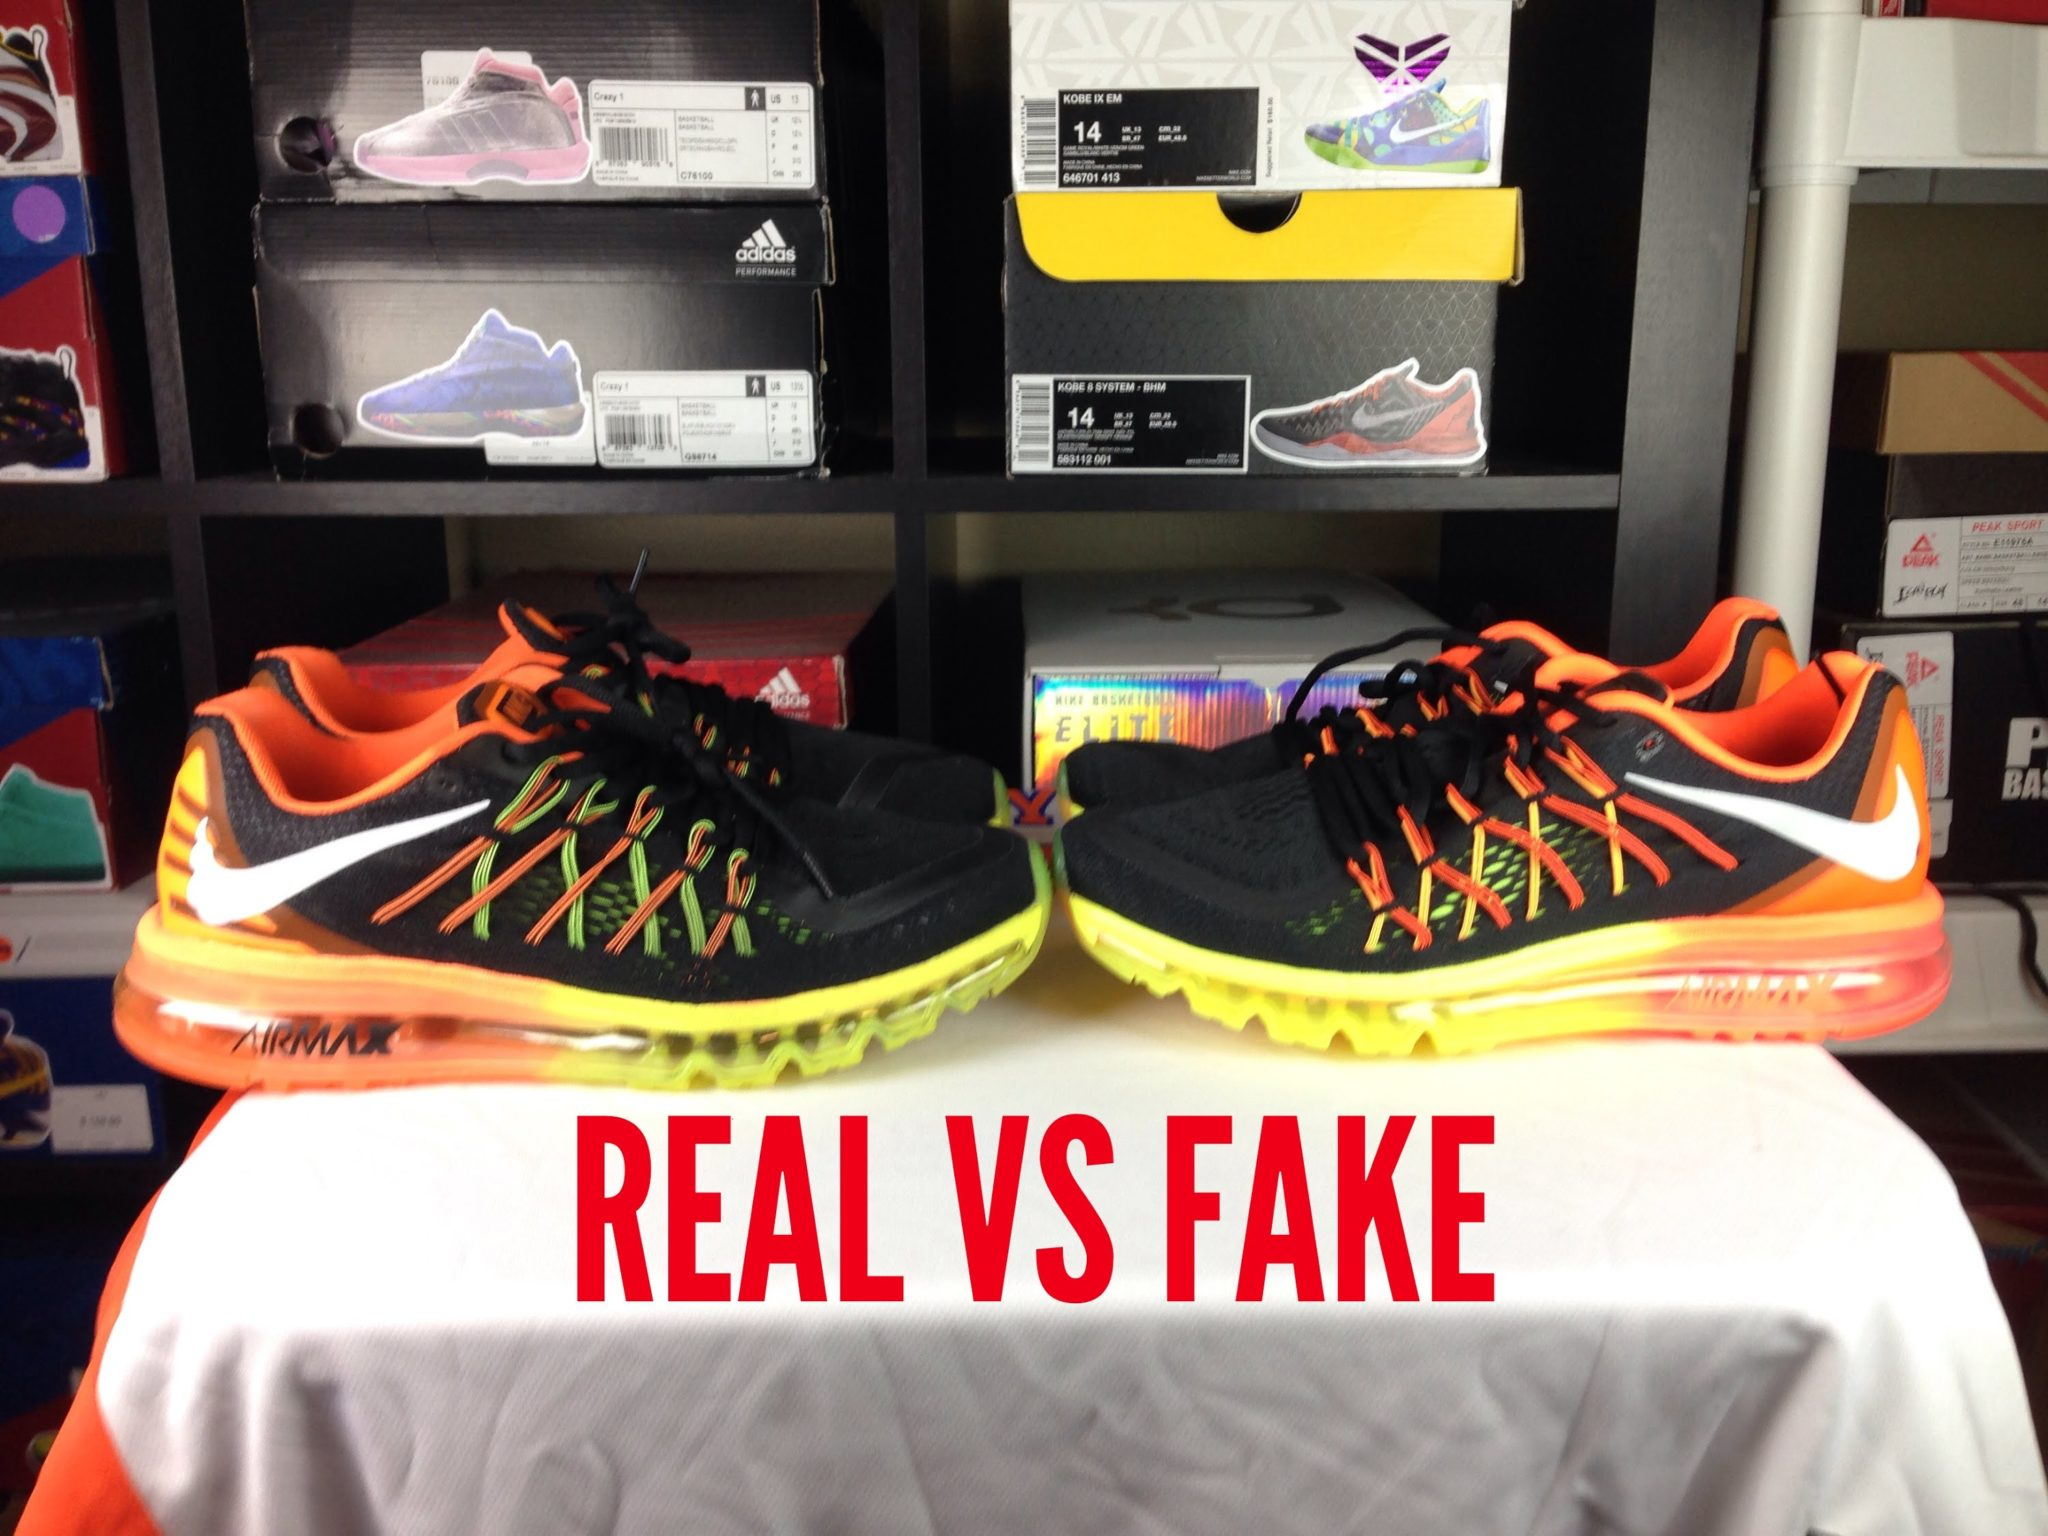 How to Tell if Adidas Shoes are Fake Identifying Fake Adidas